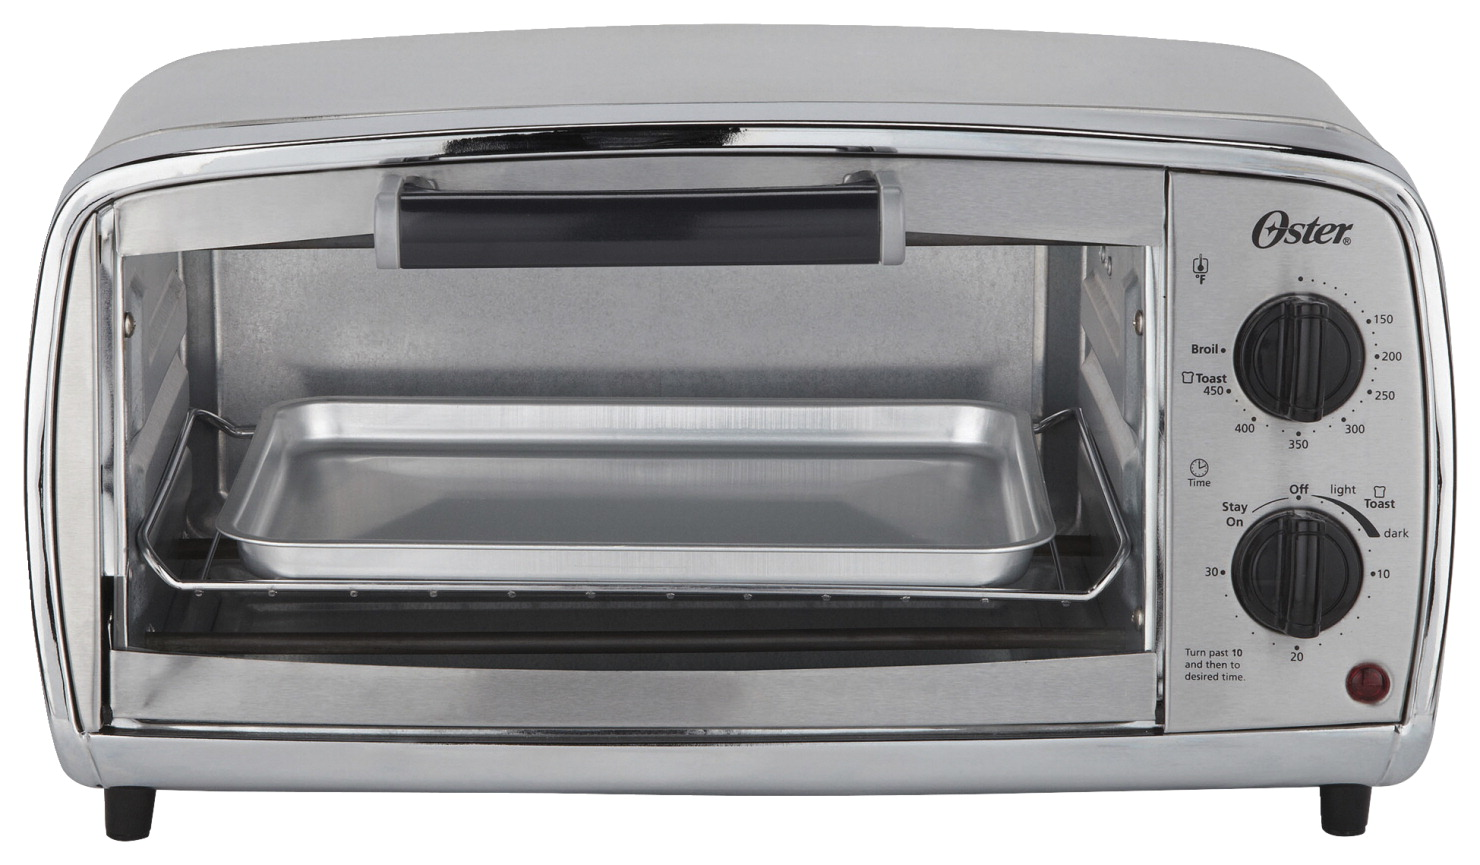 beach reviews toaster tabletop ovens slice oven wayfair kitchen hamilton pdx